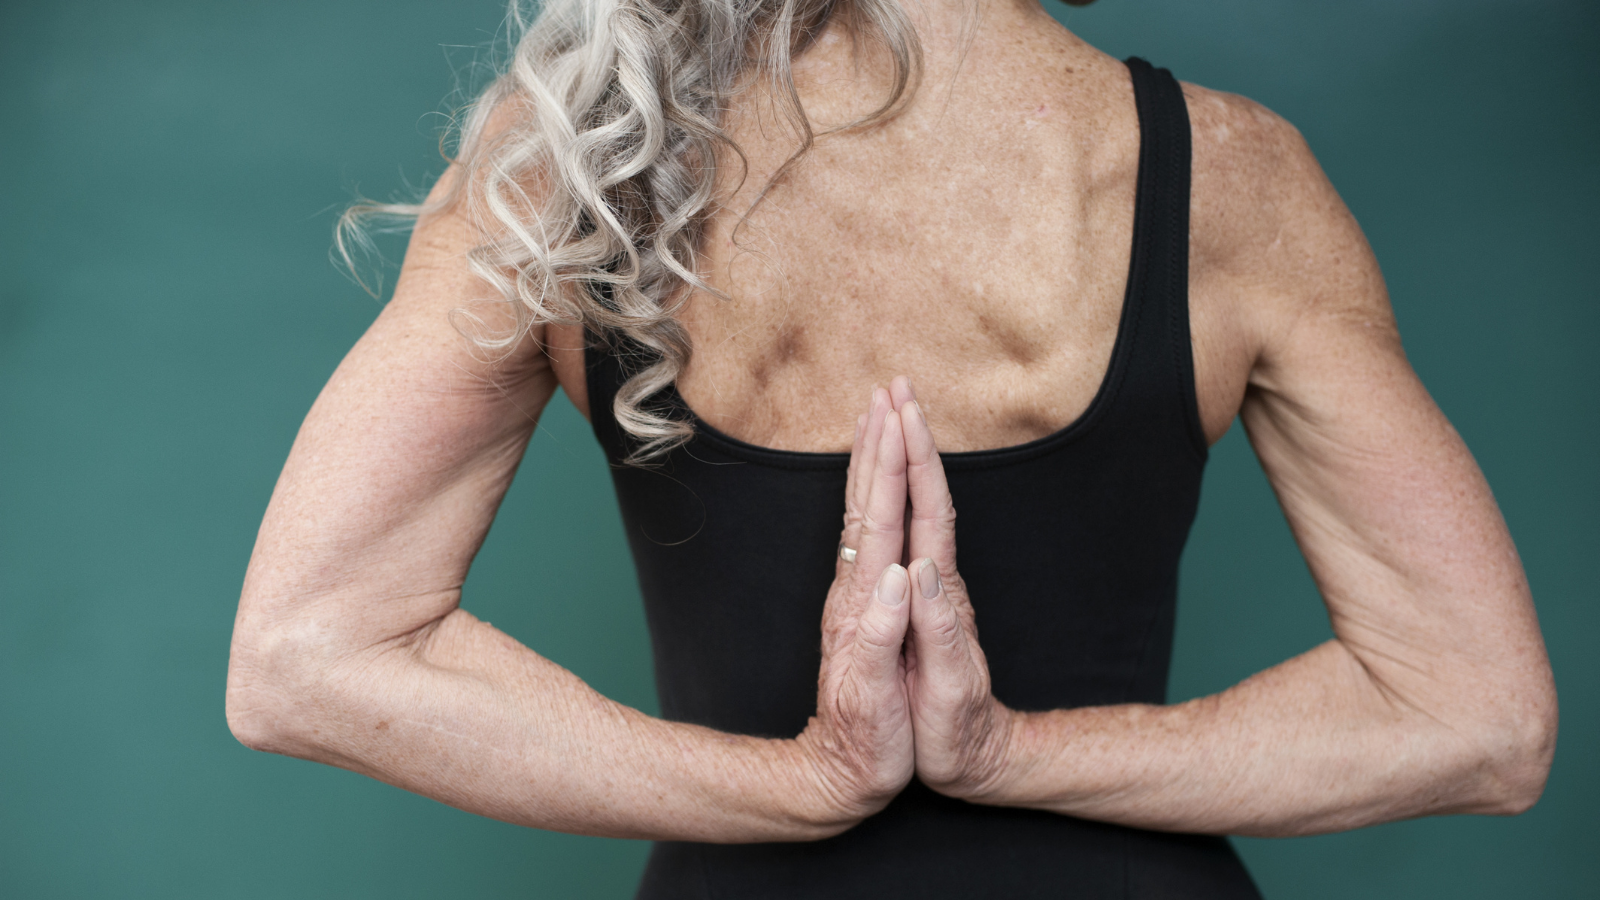 Image showing woman with good posture and yoga asana that helps posture